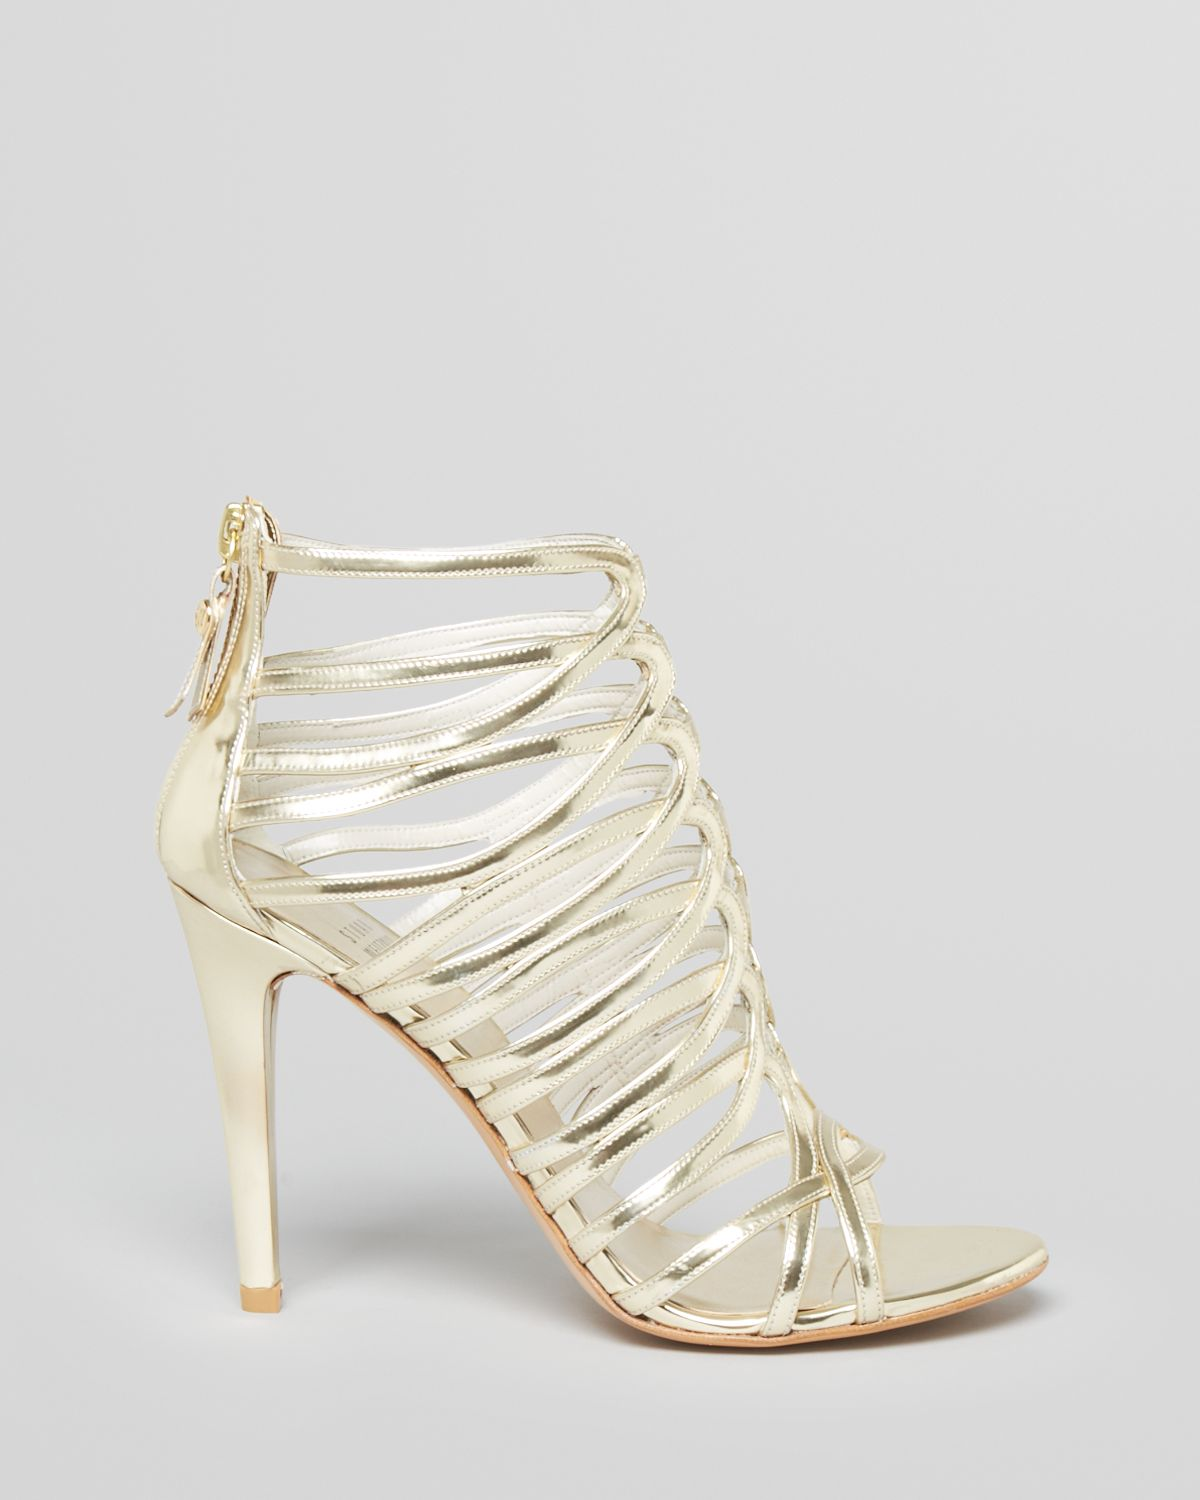 Stuart Weitzman Slingback Caged Sandals sale the cheapest WDw5y2ecW4